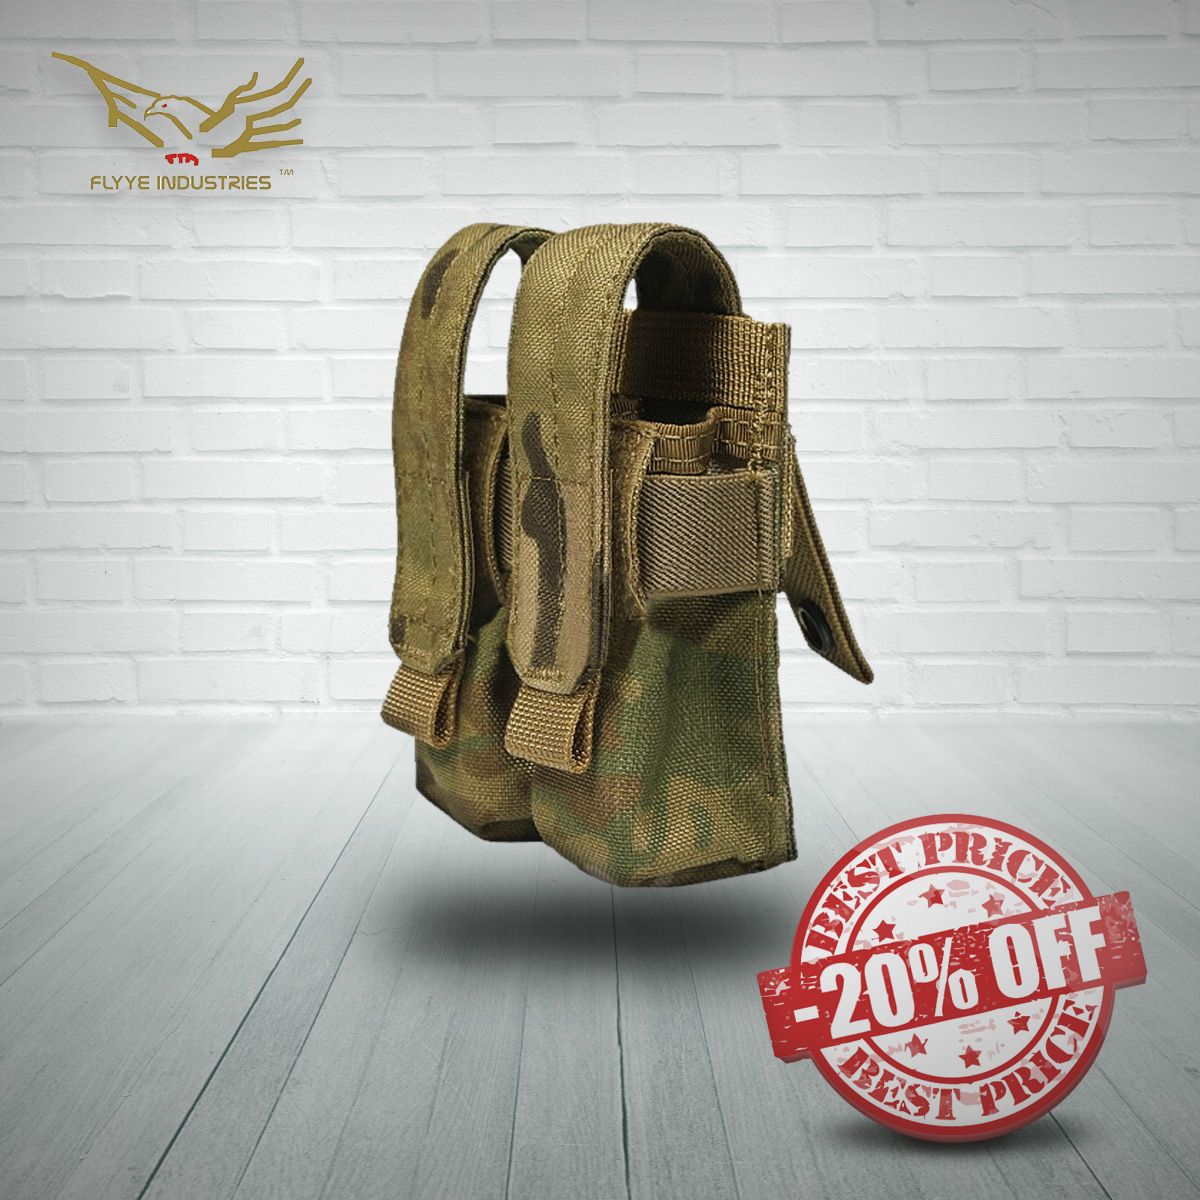 !-sales-1200x1200-flyye-double-9mm-magazine-pouch